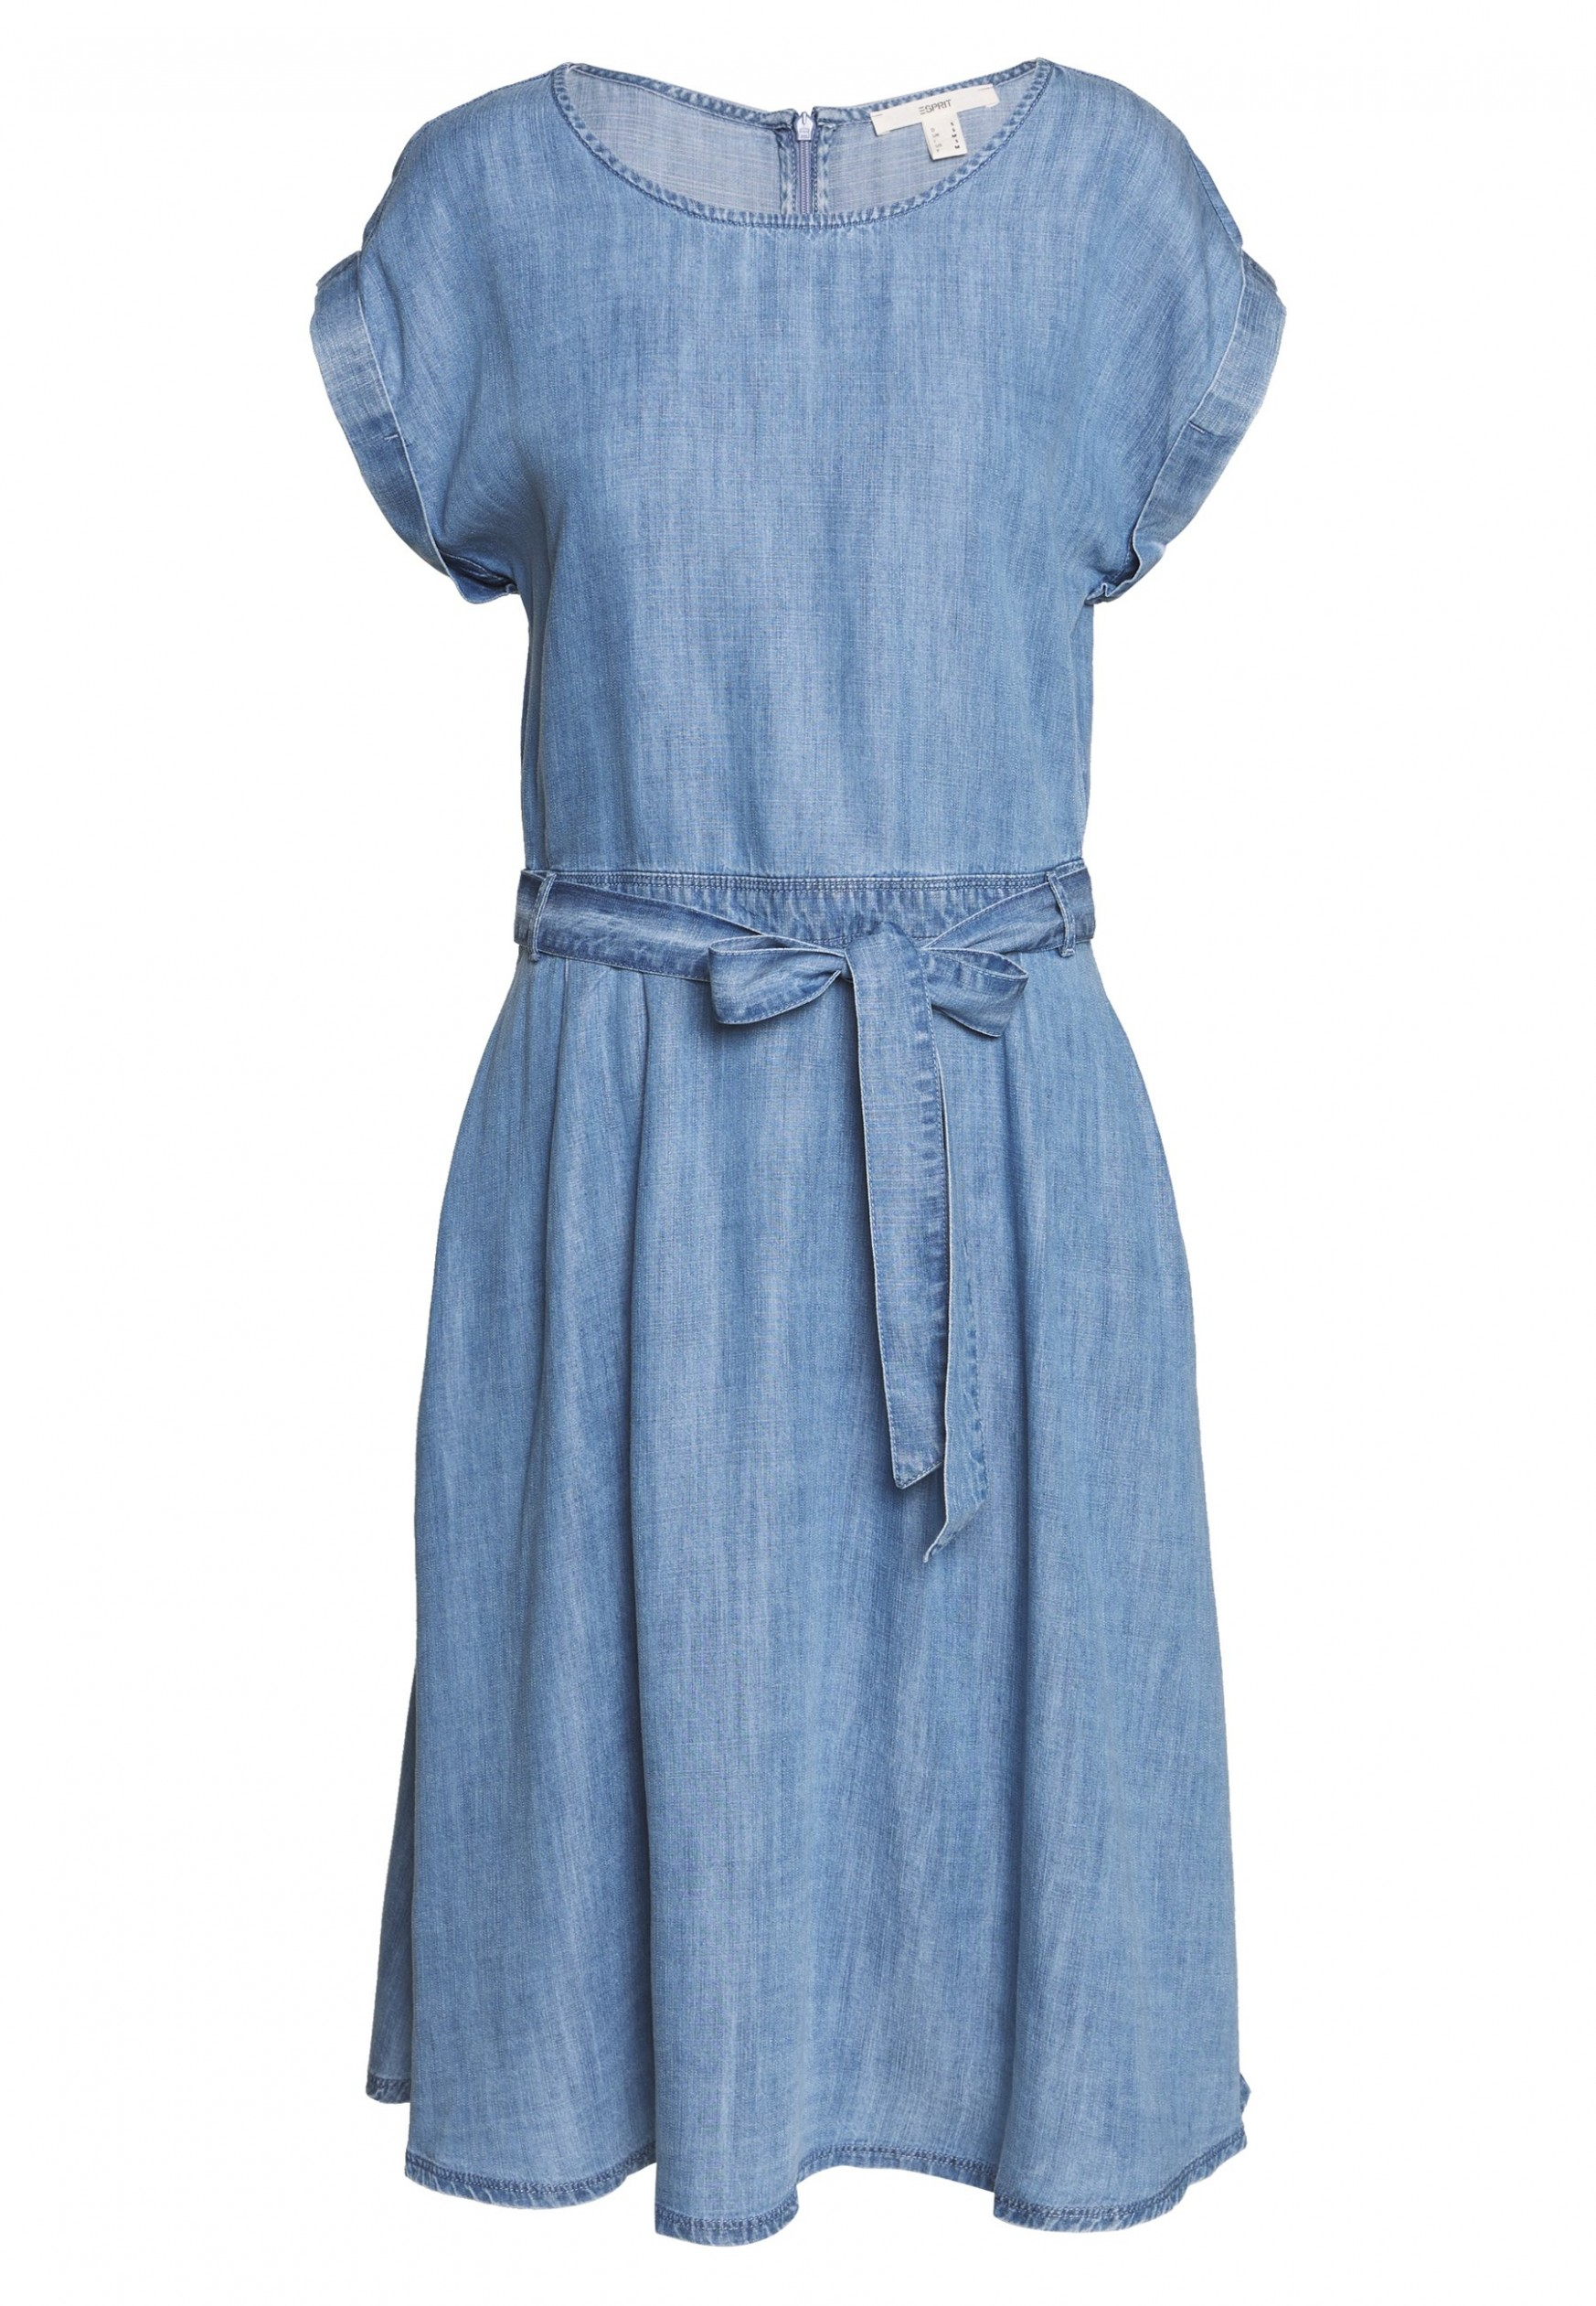 dress midi jeanskleid blue light wash jeanskleid esprit